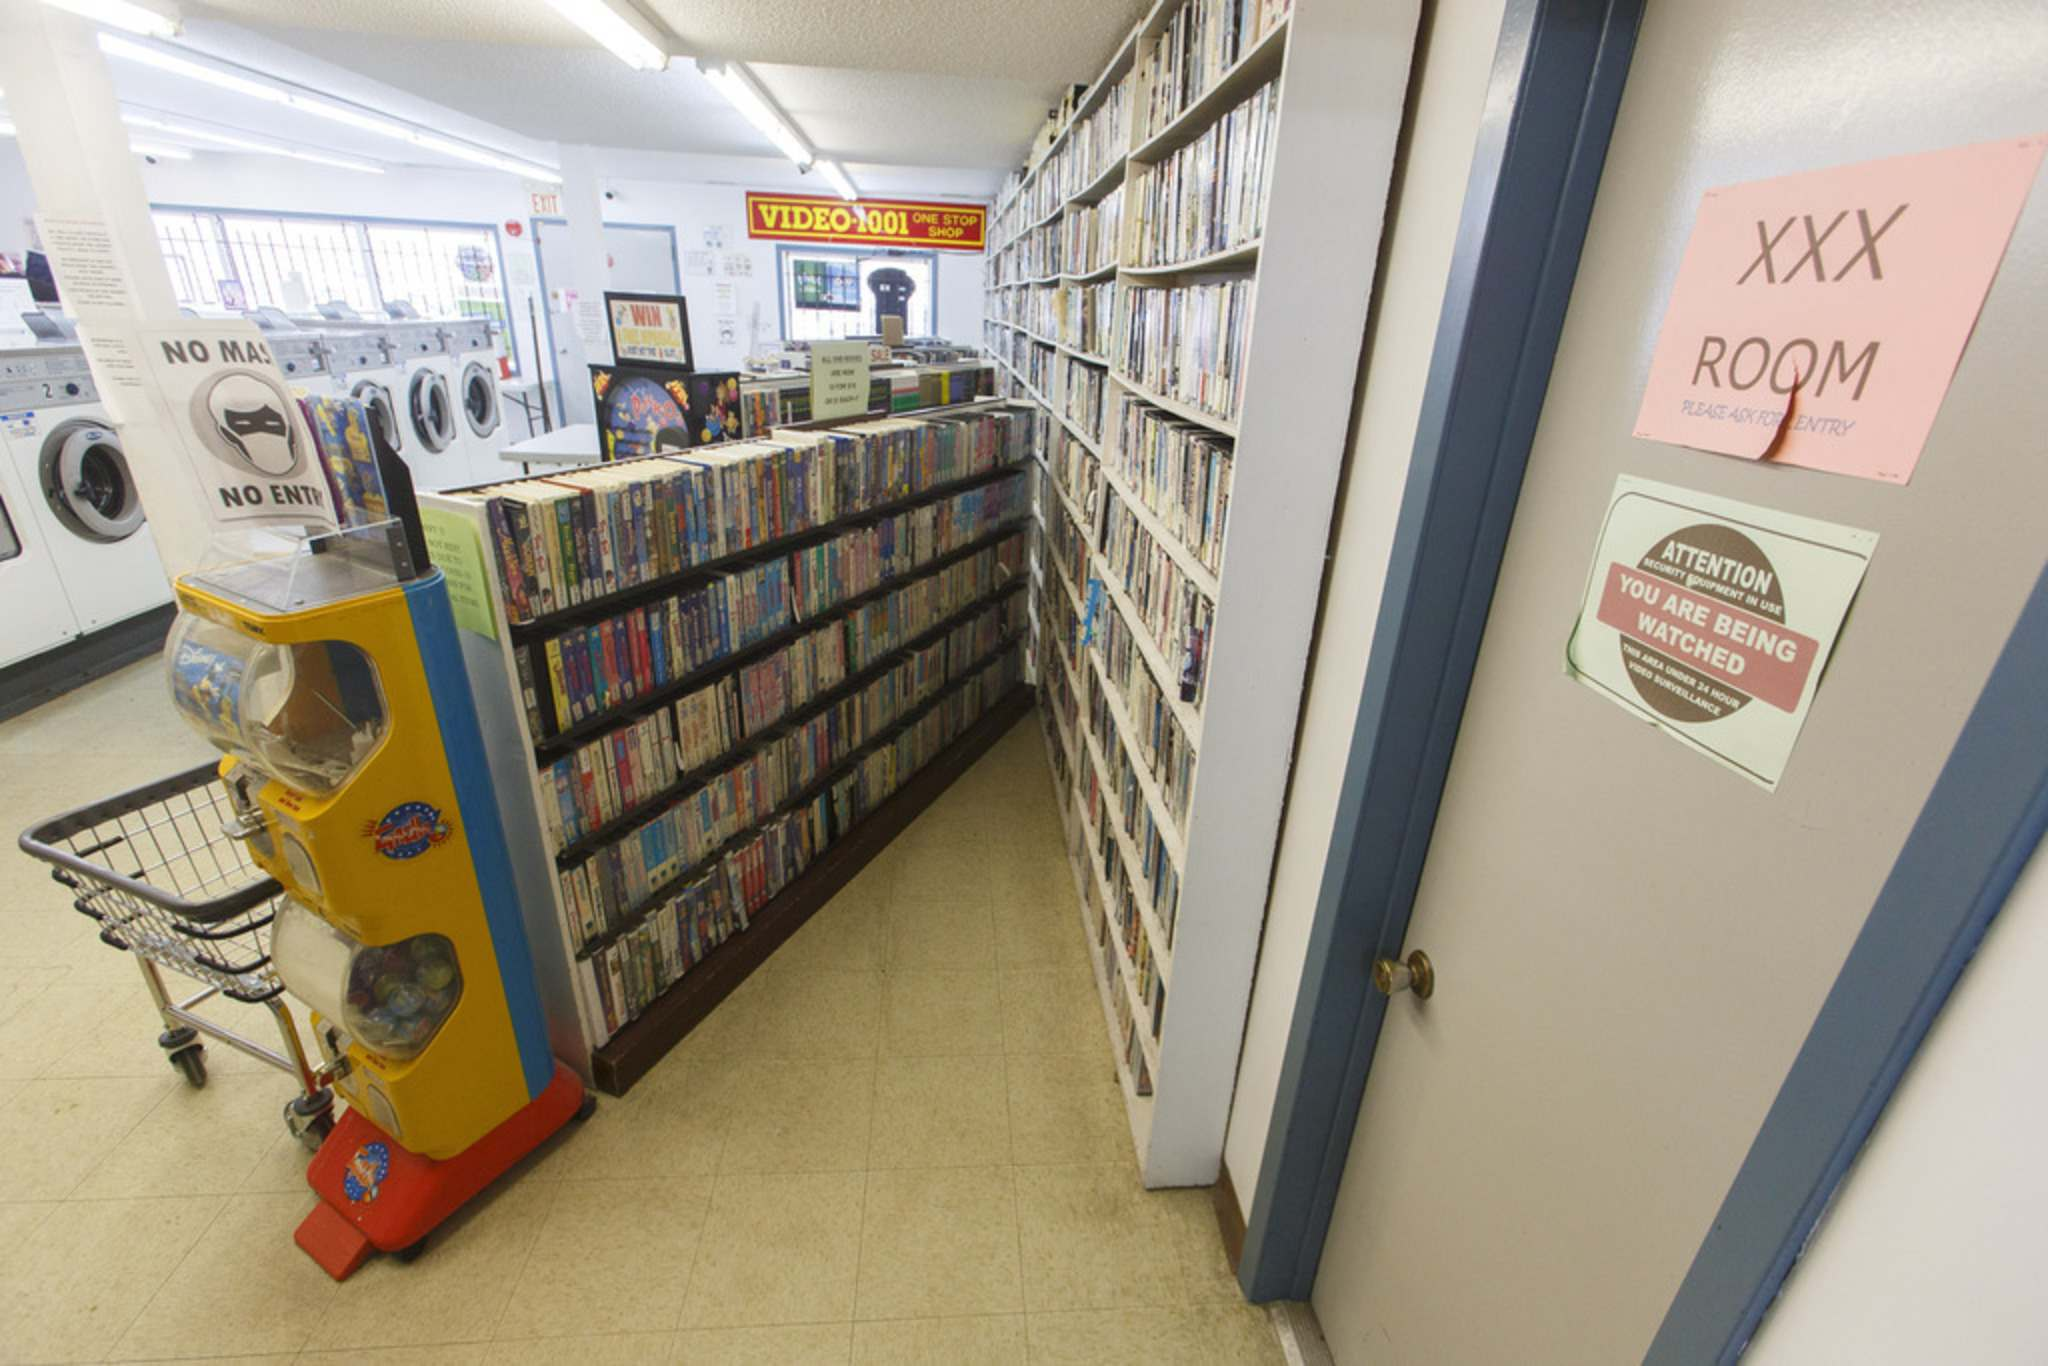 VHS movies, including a substantial number of adult films, are still available for purchase. (Mike Deal / Winnipeg Free Press)</p>